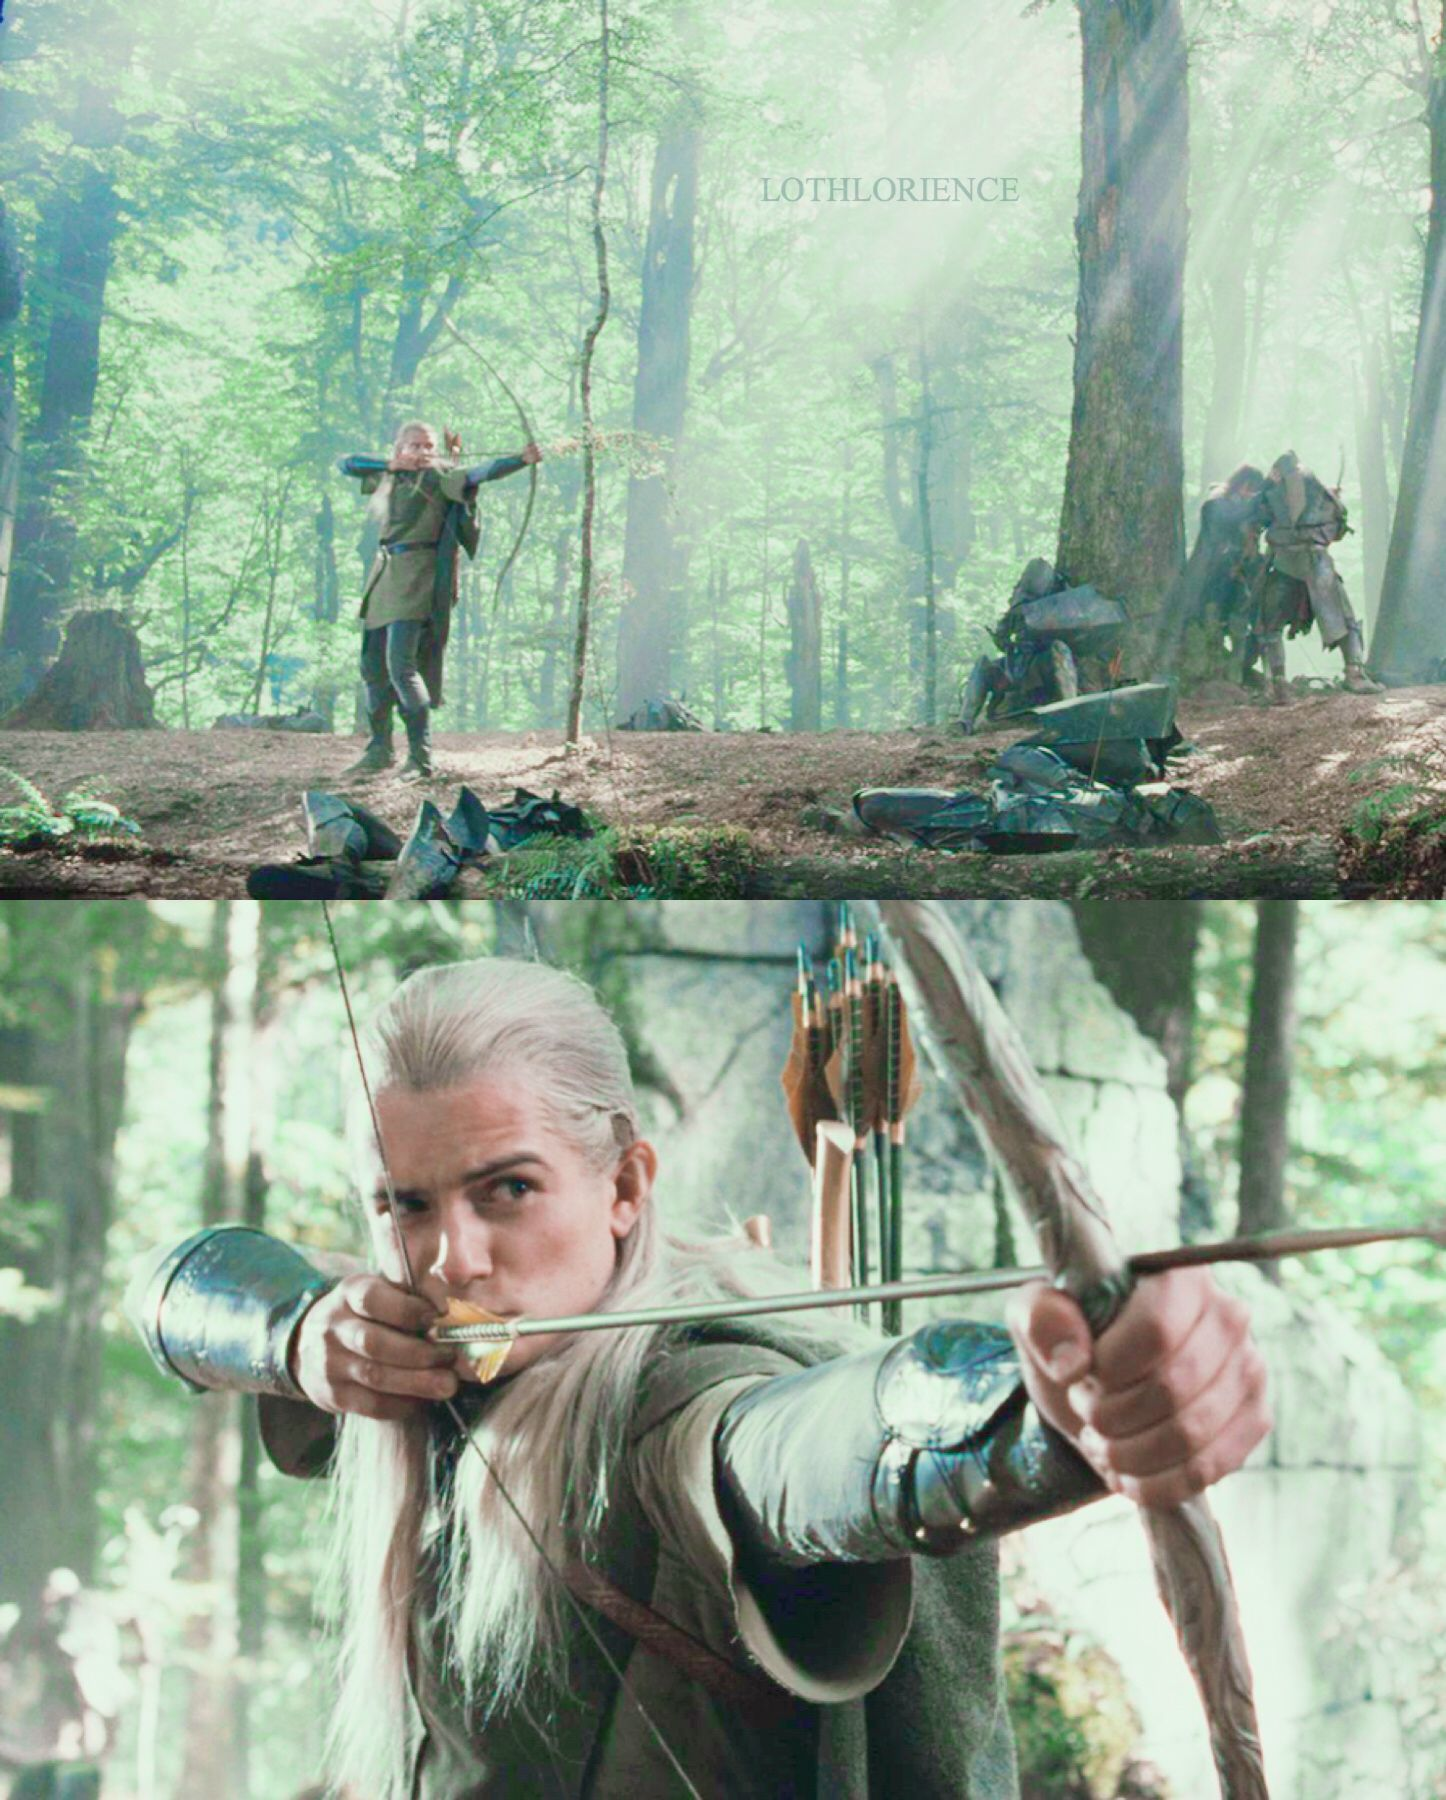 Pin by Elemmire on LOTR/The Hobbit Legolas, Middle earth